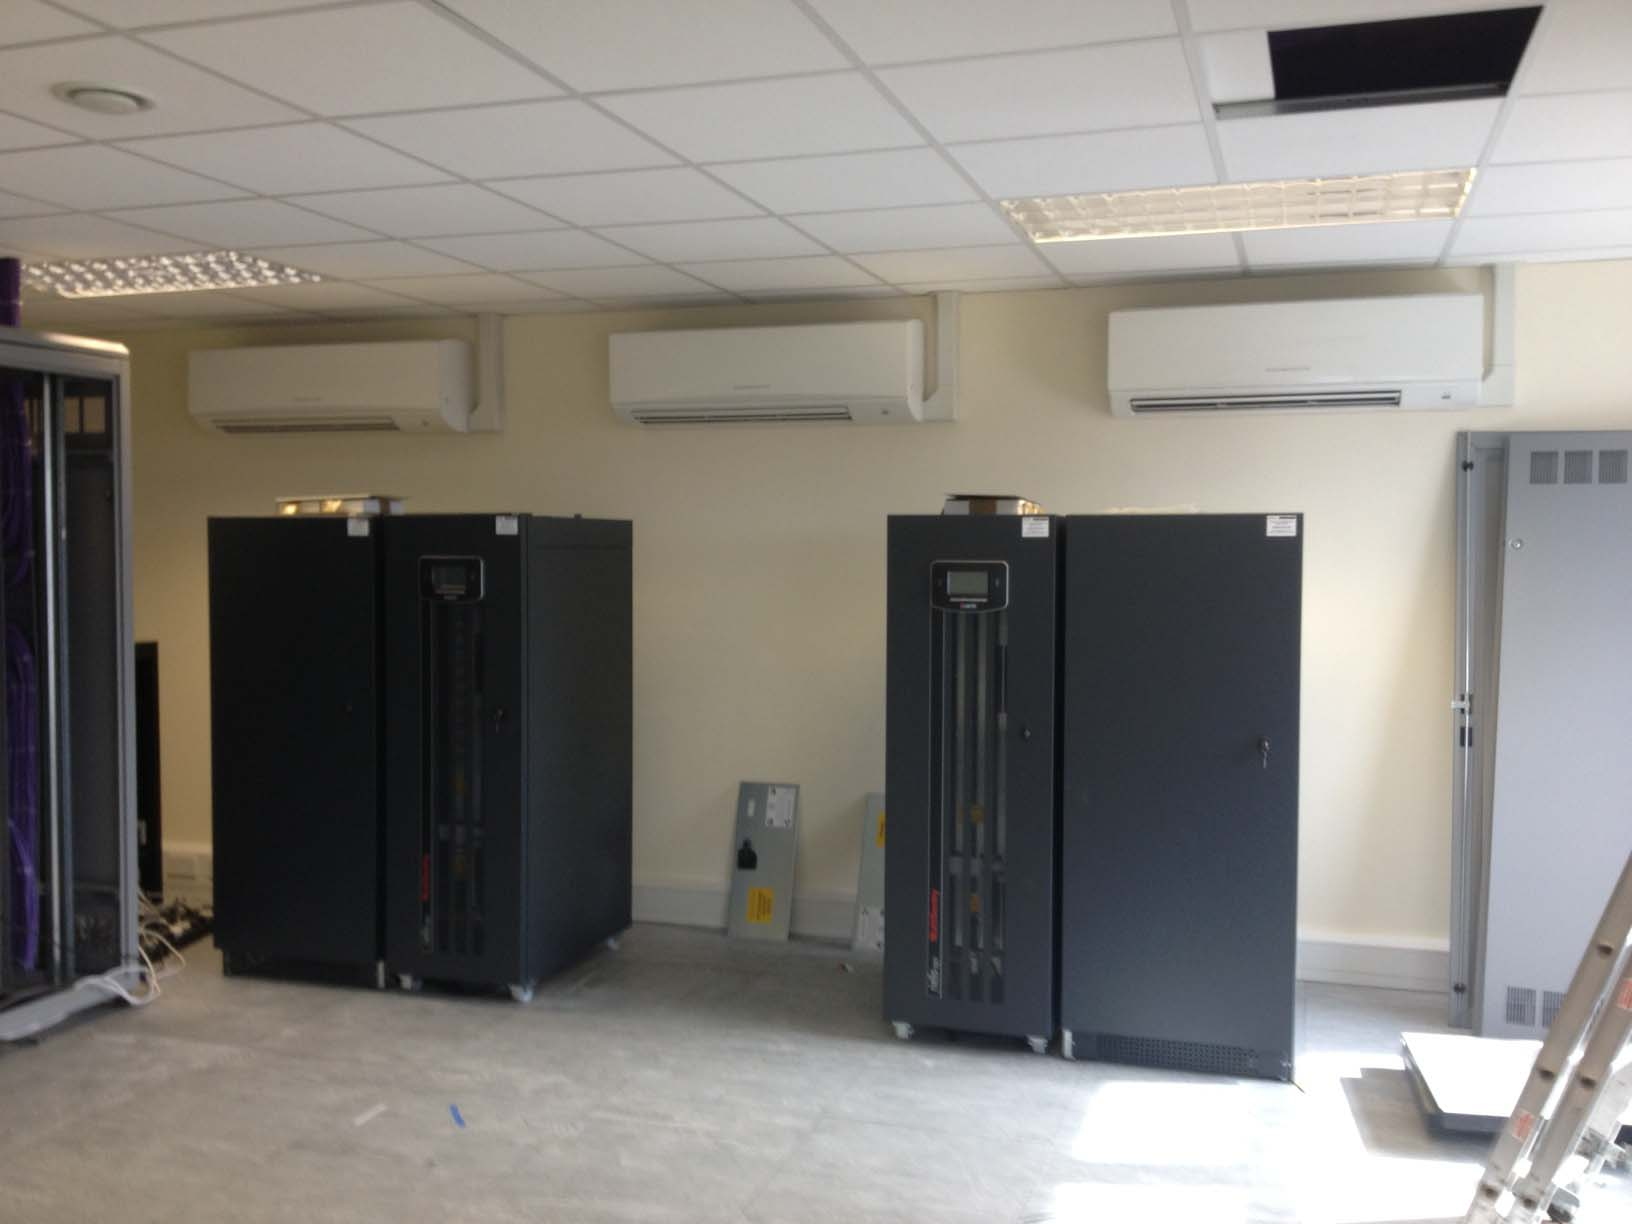 wall mounted air conditioning units mounted on the side of the server room in case of any future water failure